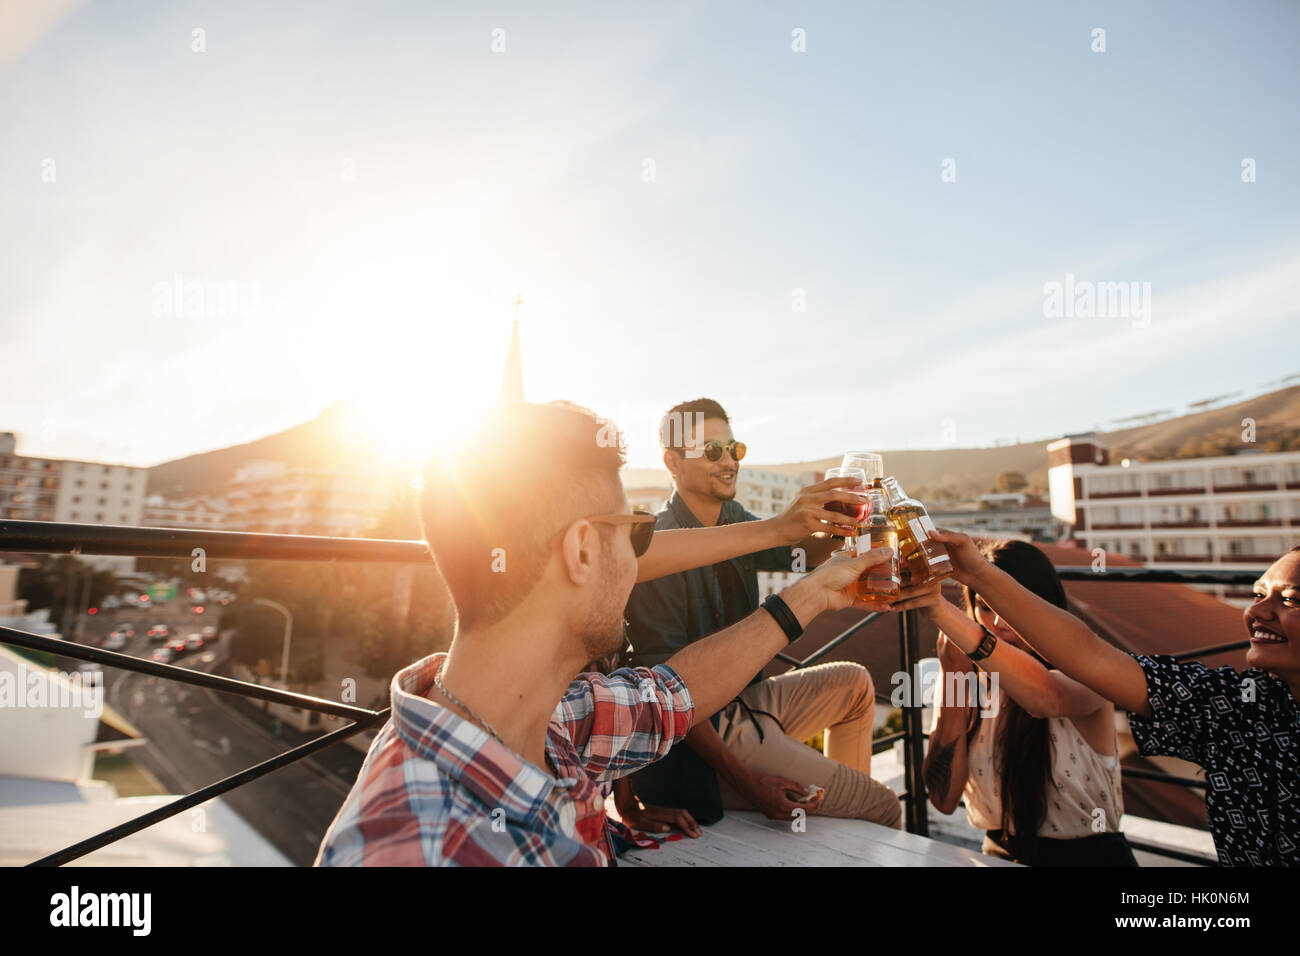 Friends toasting drinks at a party. Young friends hanging out at rooftop party and enjoying drinks. - Stock Image